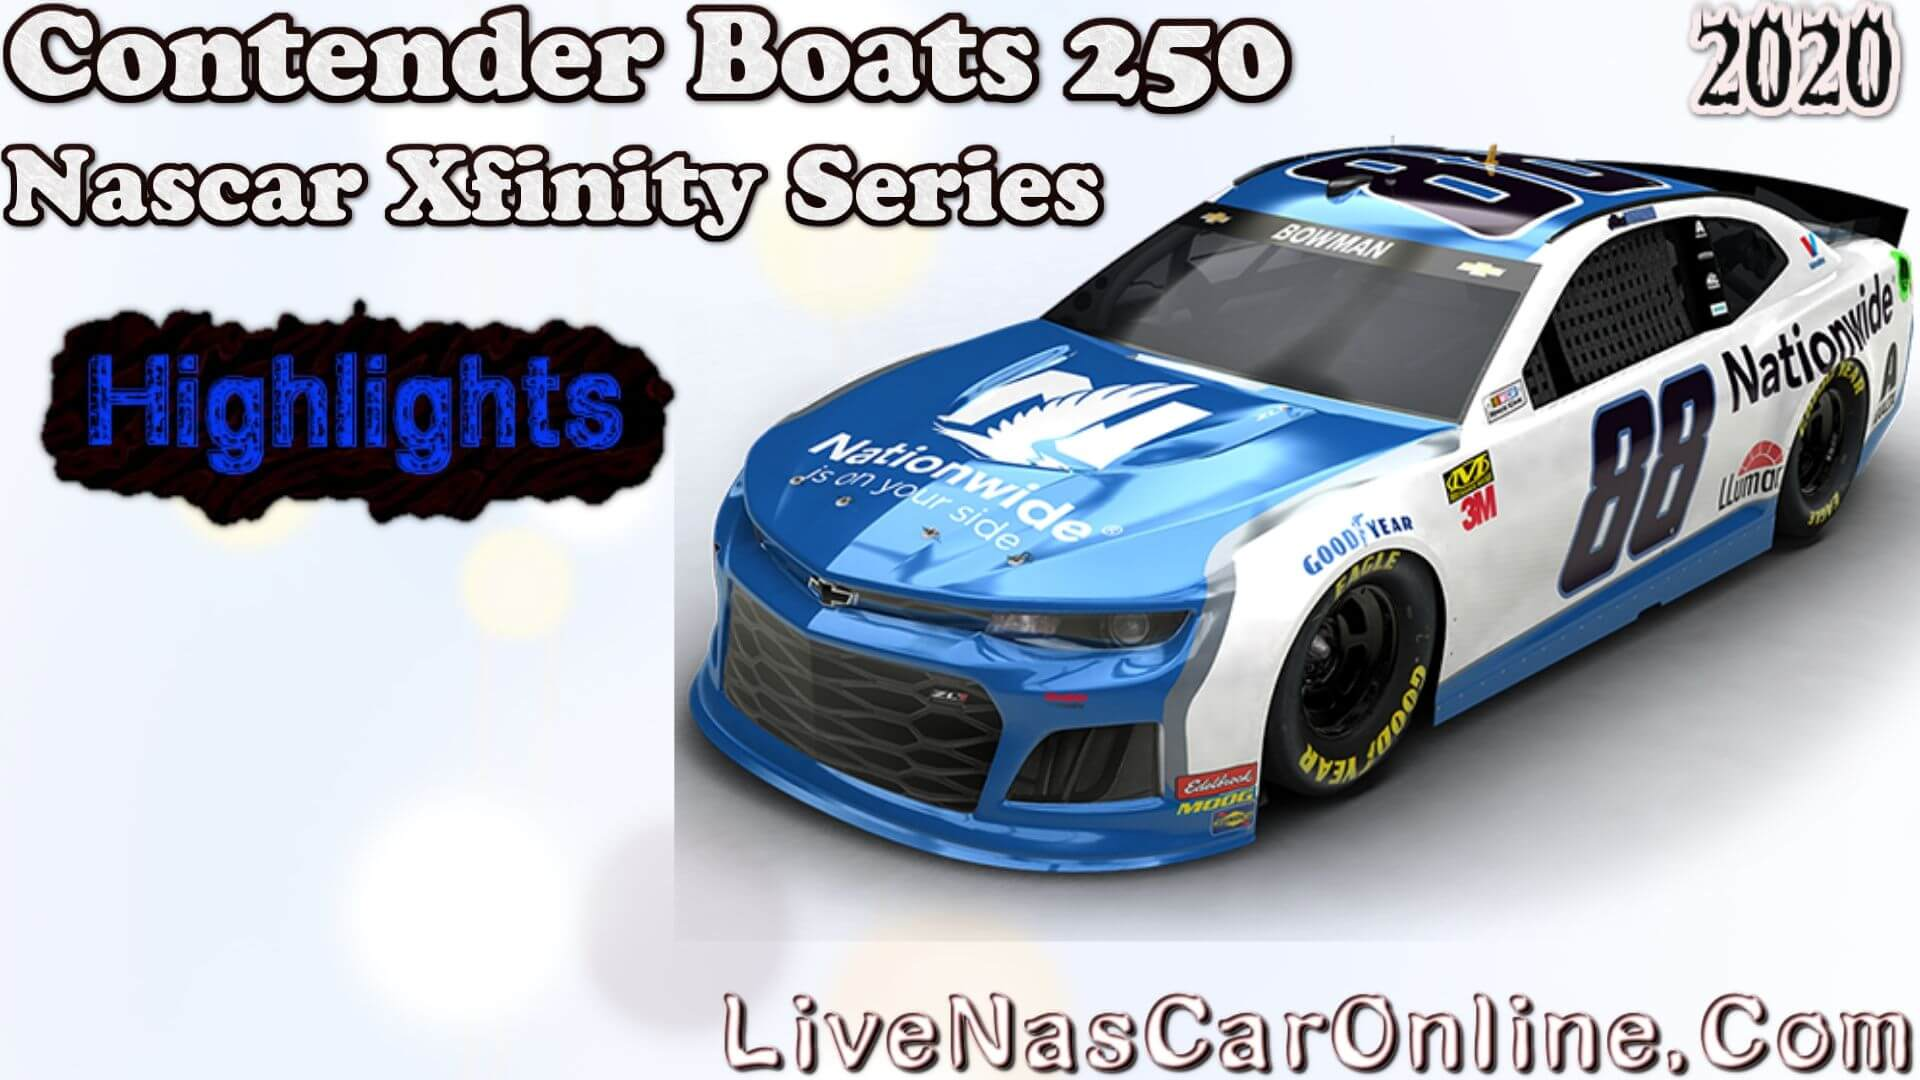 Contender Boats 250 Xfinity Series Highlights 2020